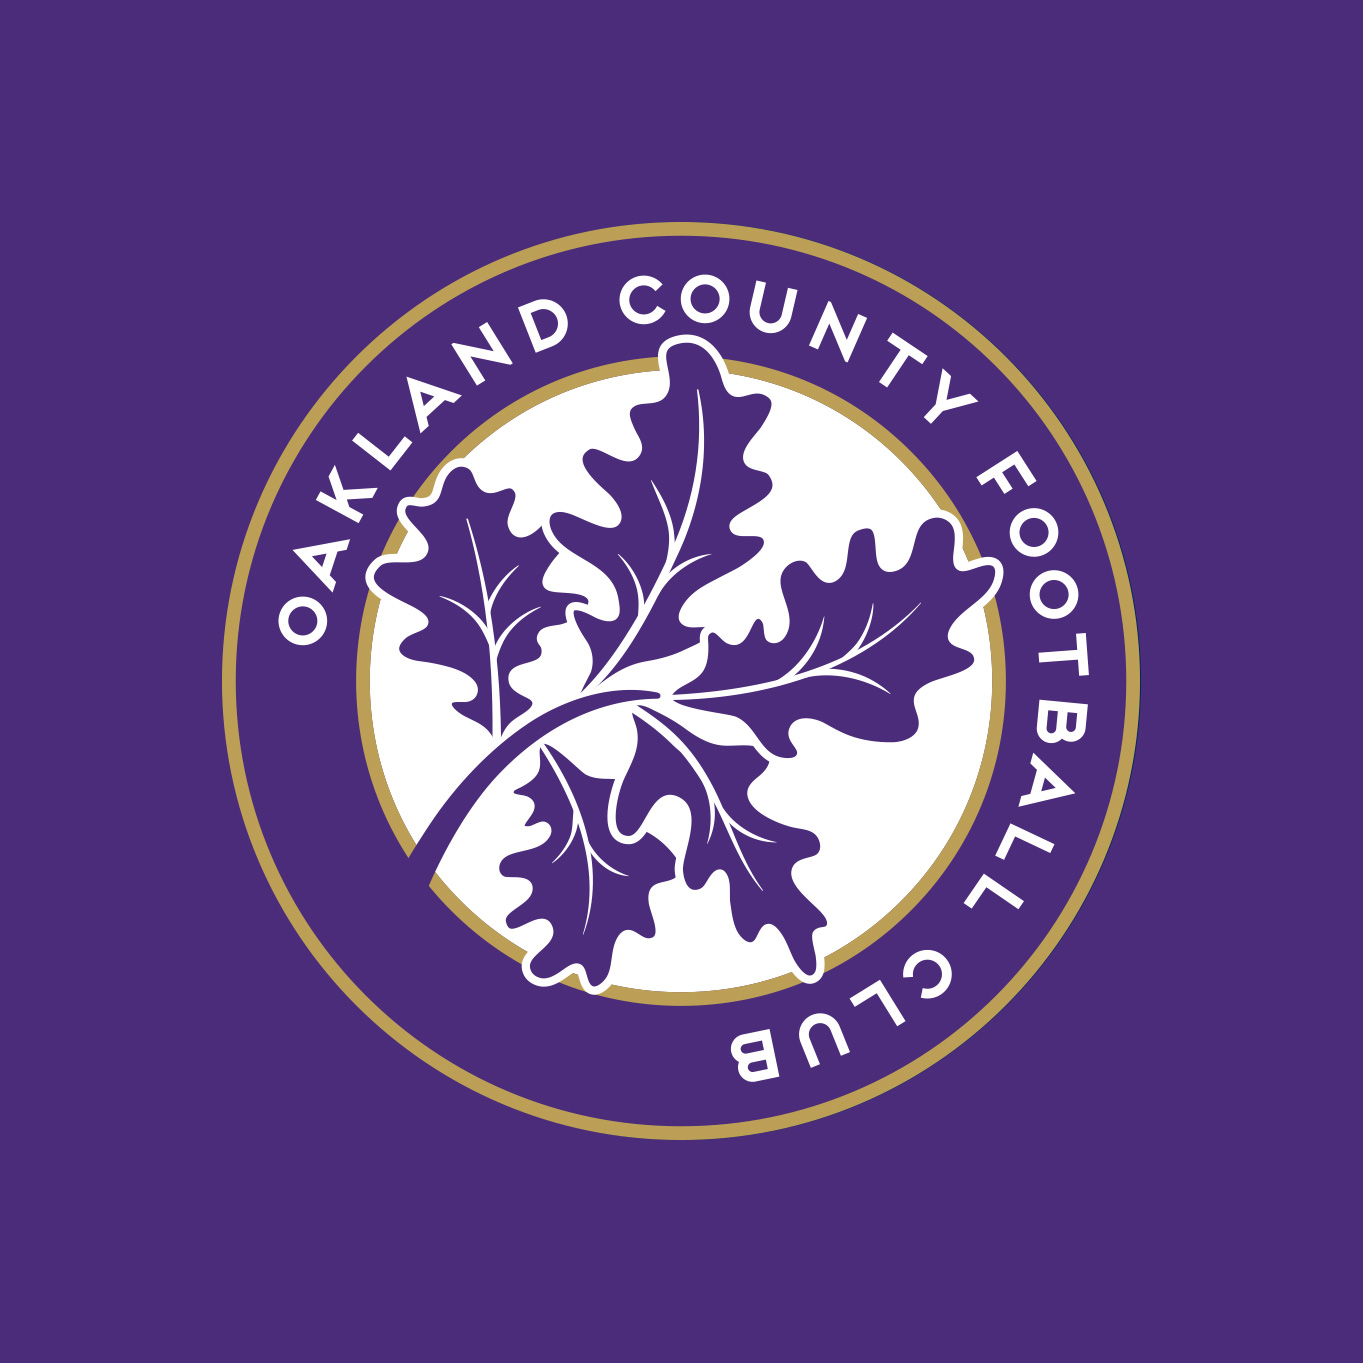 Oakland County FC, OCFC, Premier League of America, Soccer, Crest, Badge, Logo, Matthew Wolff